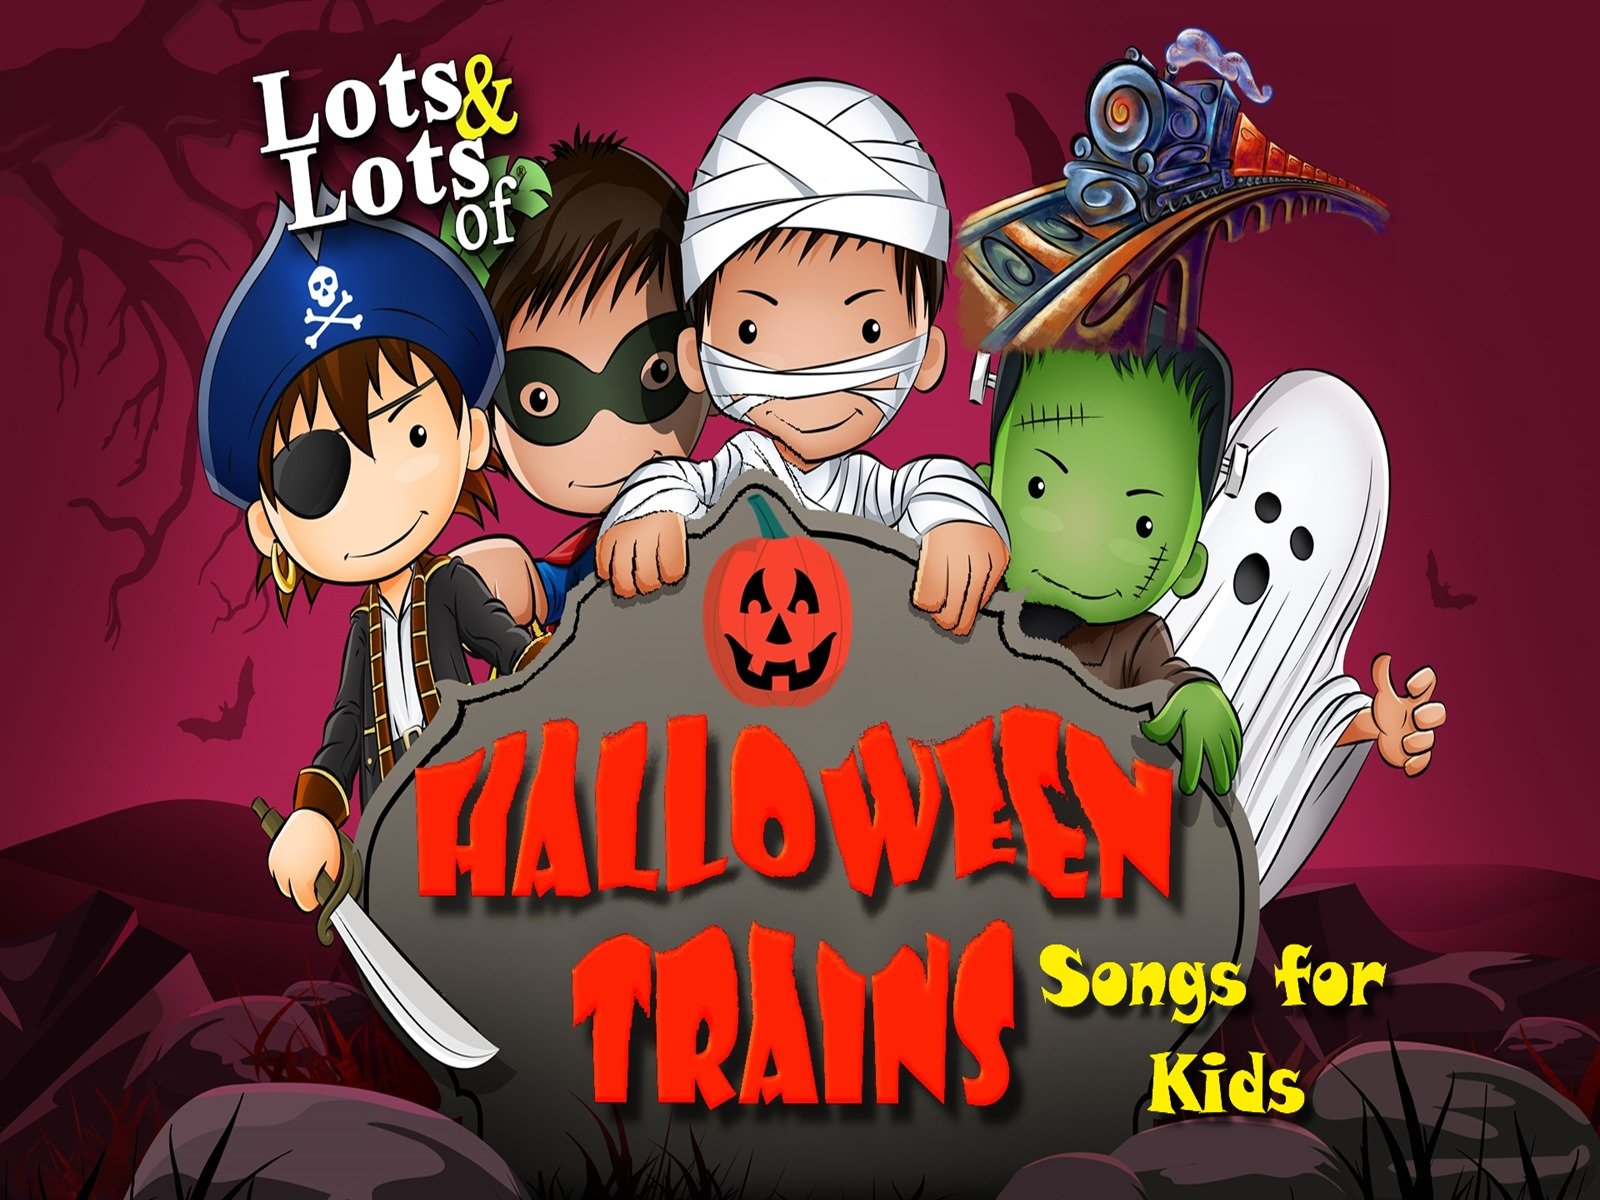 Lots & Lots of Halloween Trains